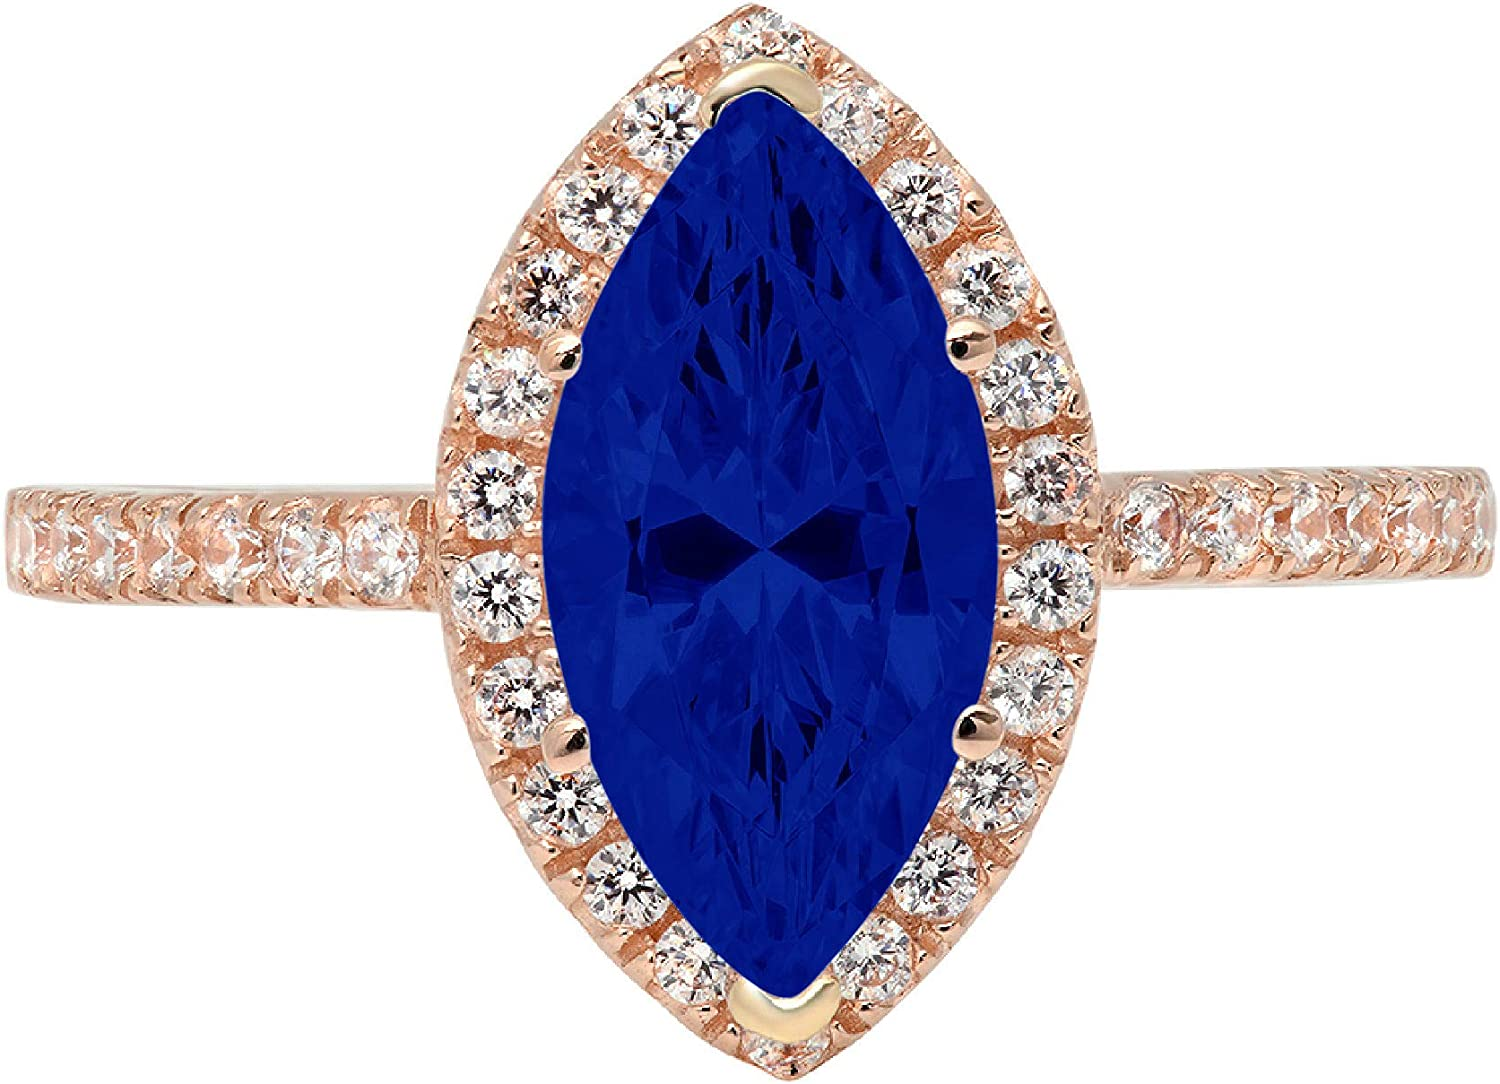 2.32ct Brilliant Marquise Cut Solitaire with Accent Halo Flawless Ideal Genuine Cubic Zirconia Blue Sapphire Engagement Promise Statement Anniversary Bridal Wedding Designer Ring 14k Rose Gold